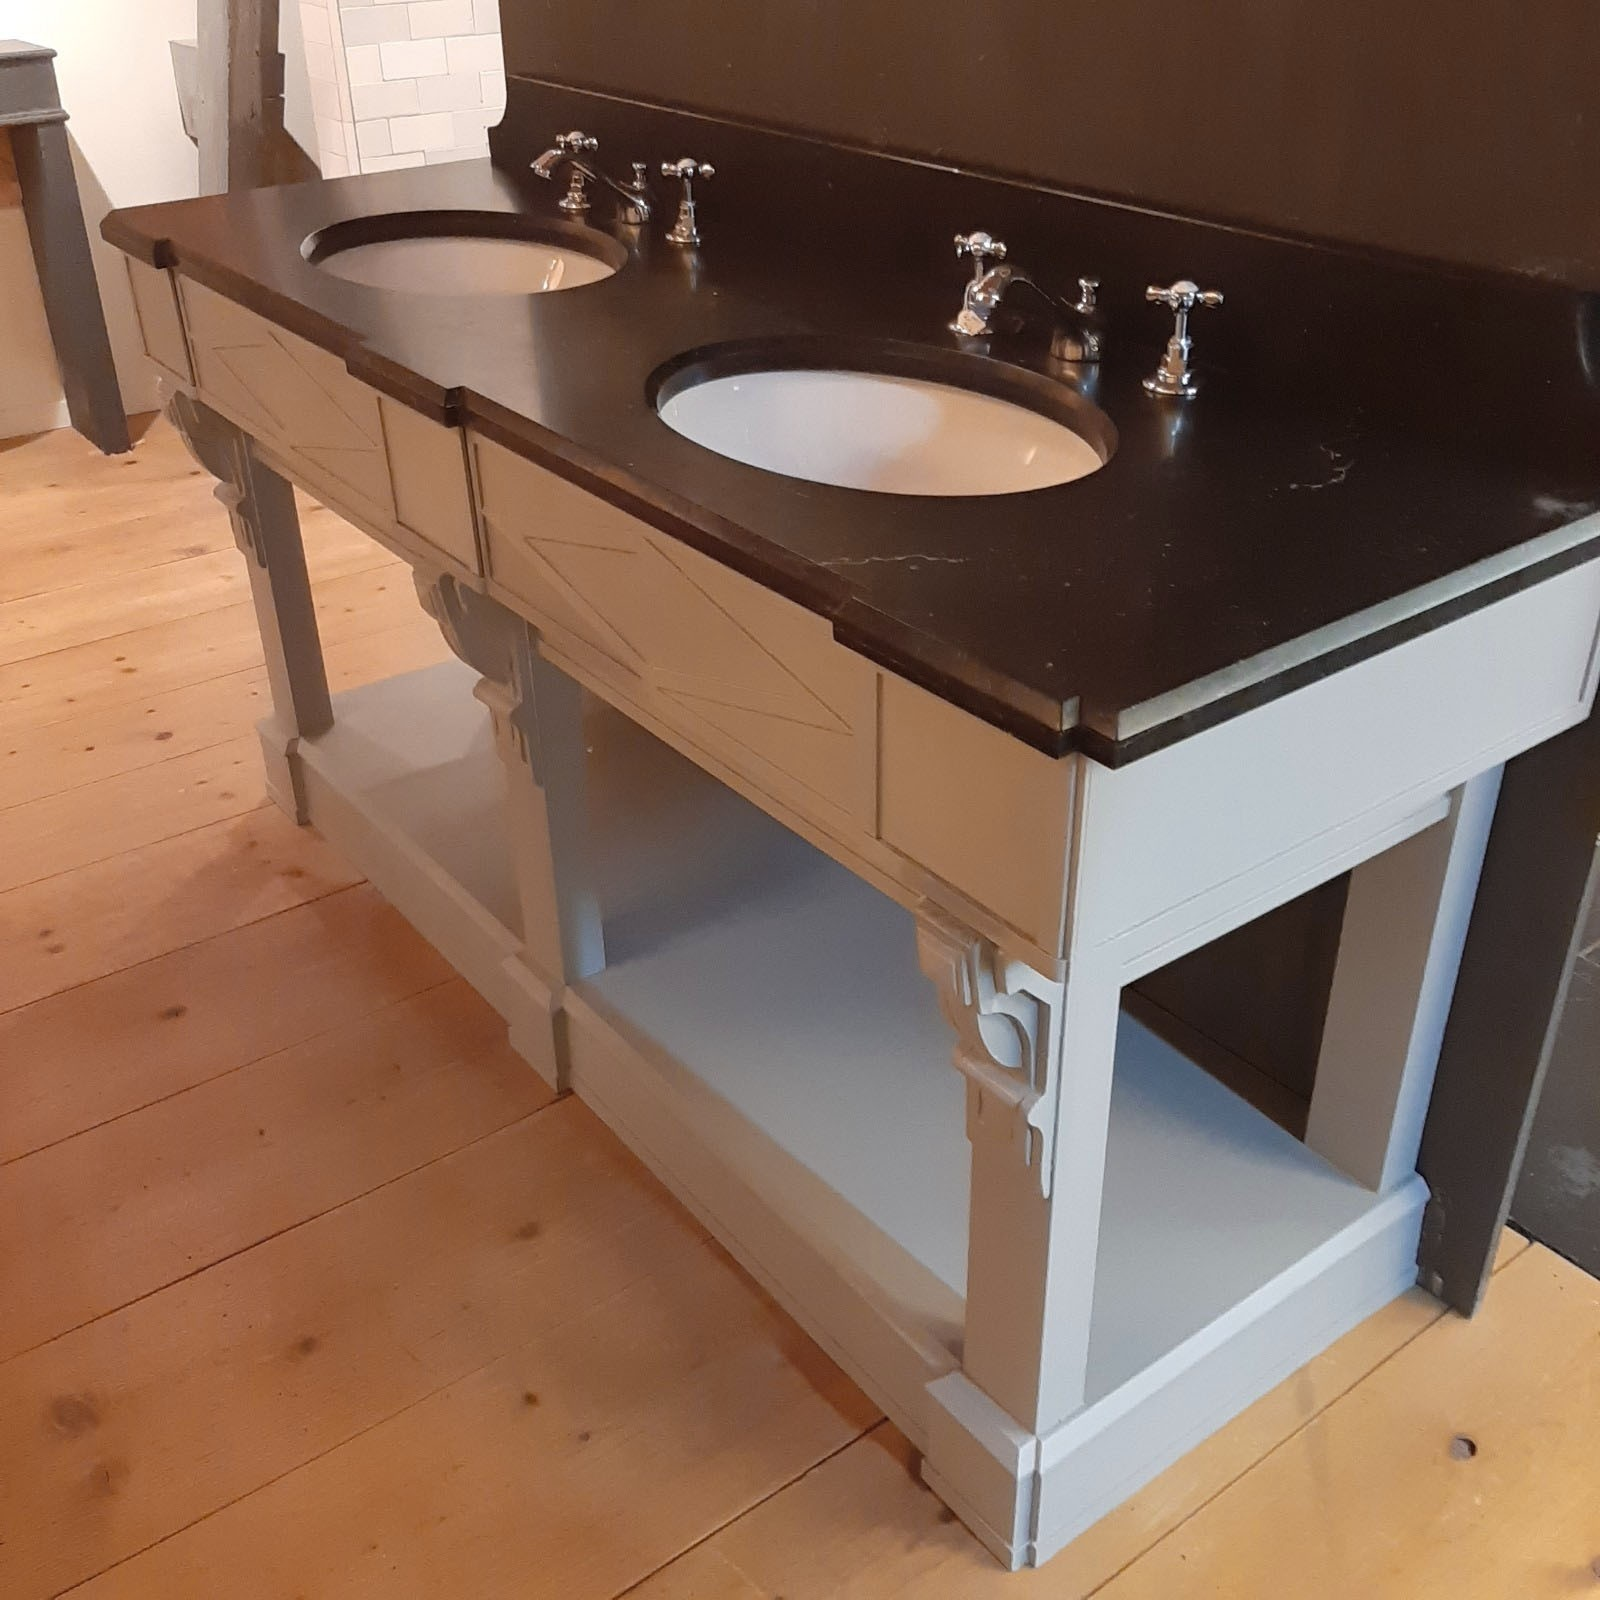 Double washbasin with Belgian hard stone top